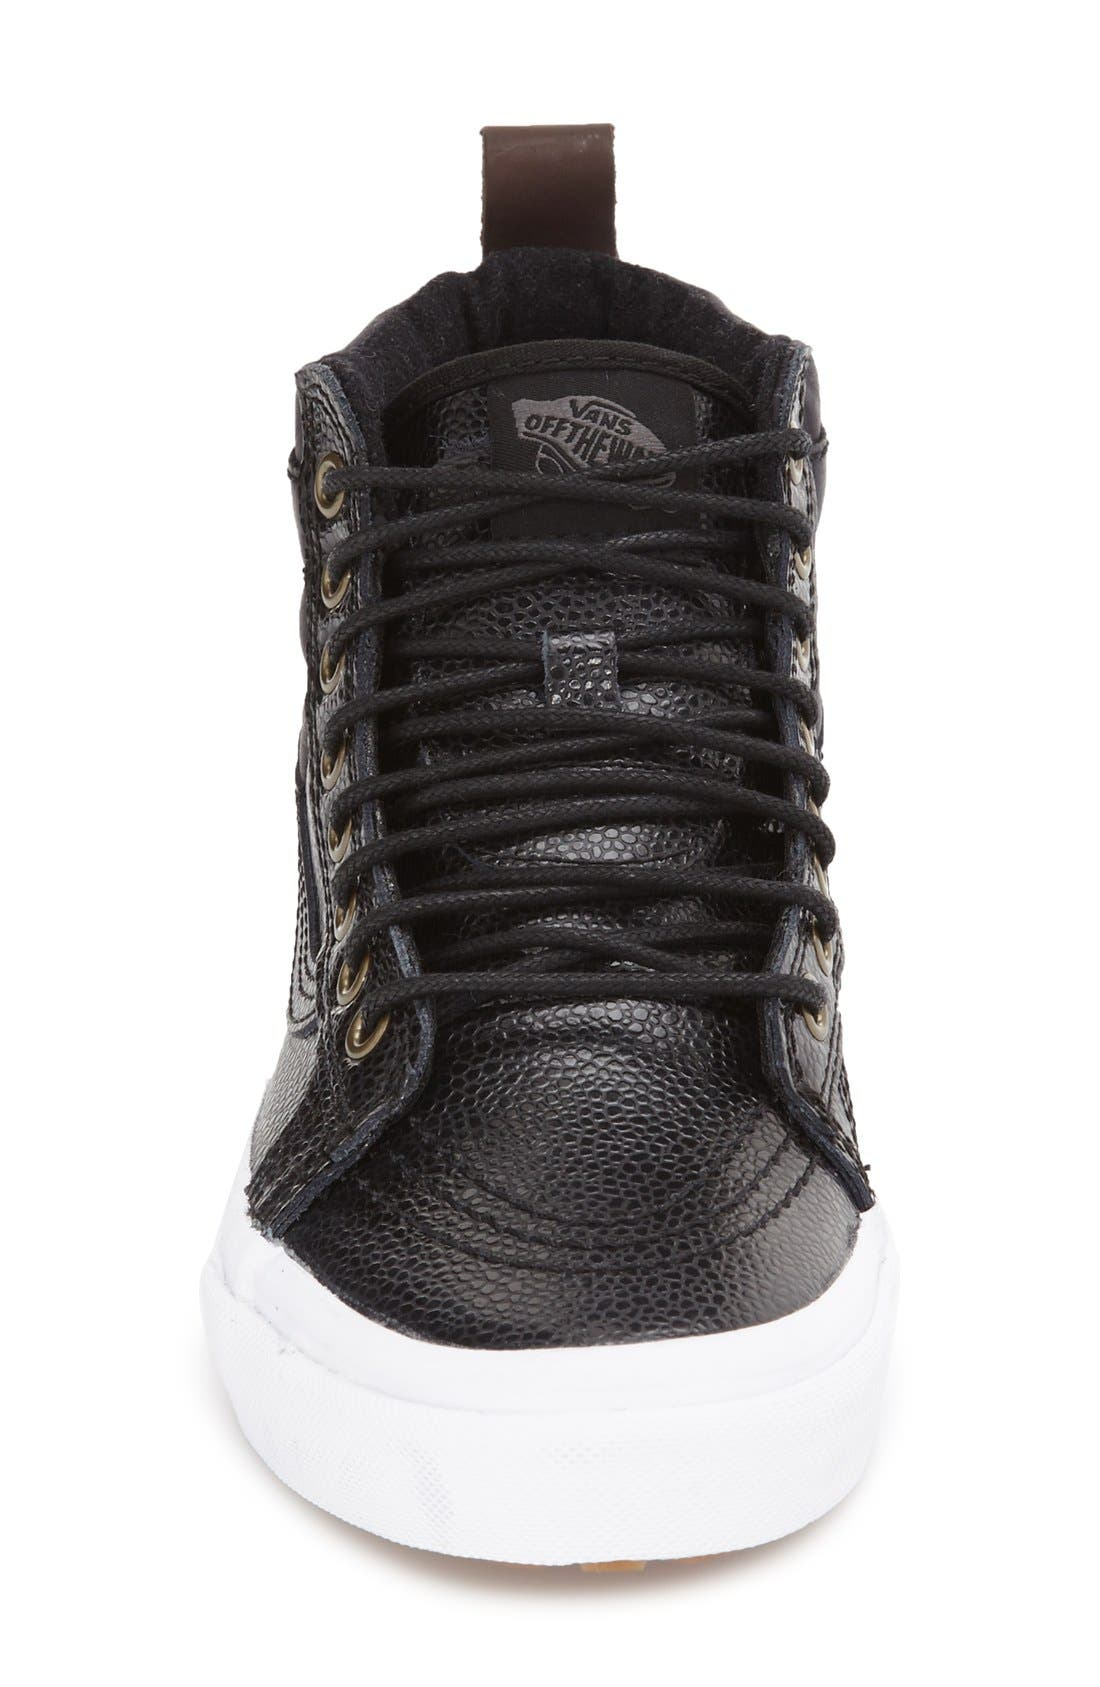 'Hana Beaman - Sk8-Hi 46 MTE' Water Resistant High Top Sneaker,                             Alternate thumbnail 3, color,                             001